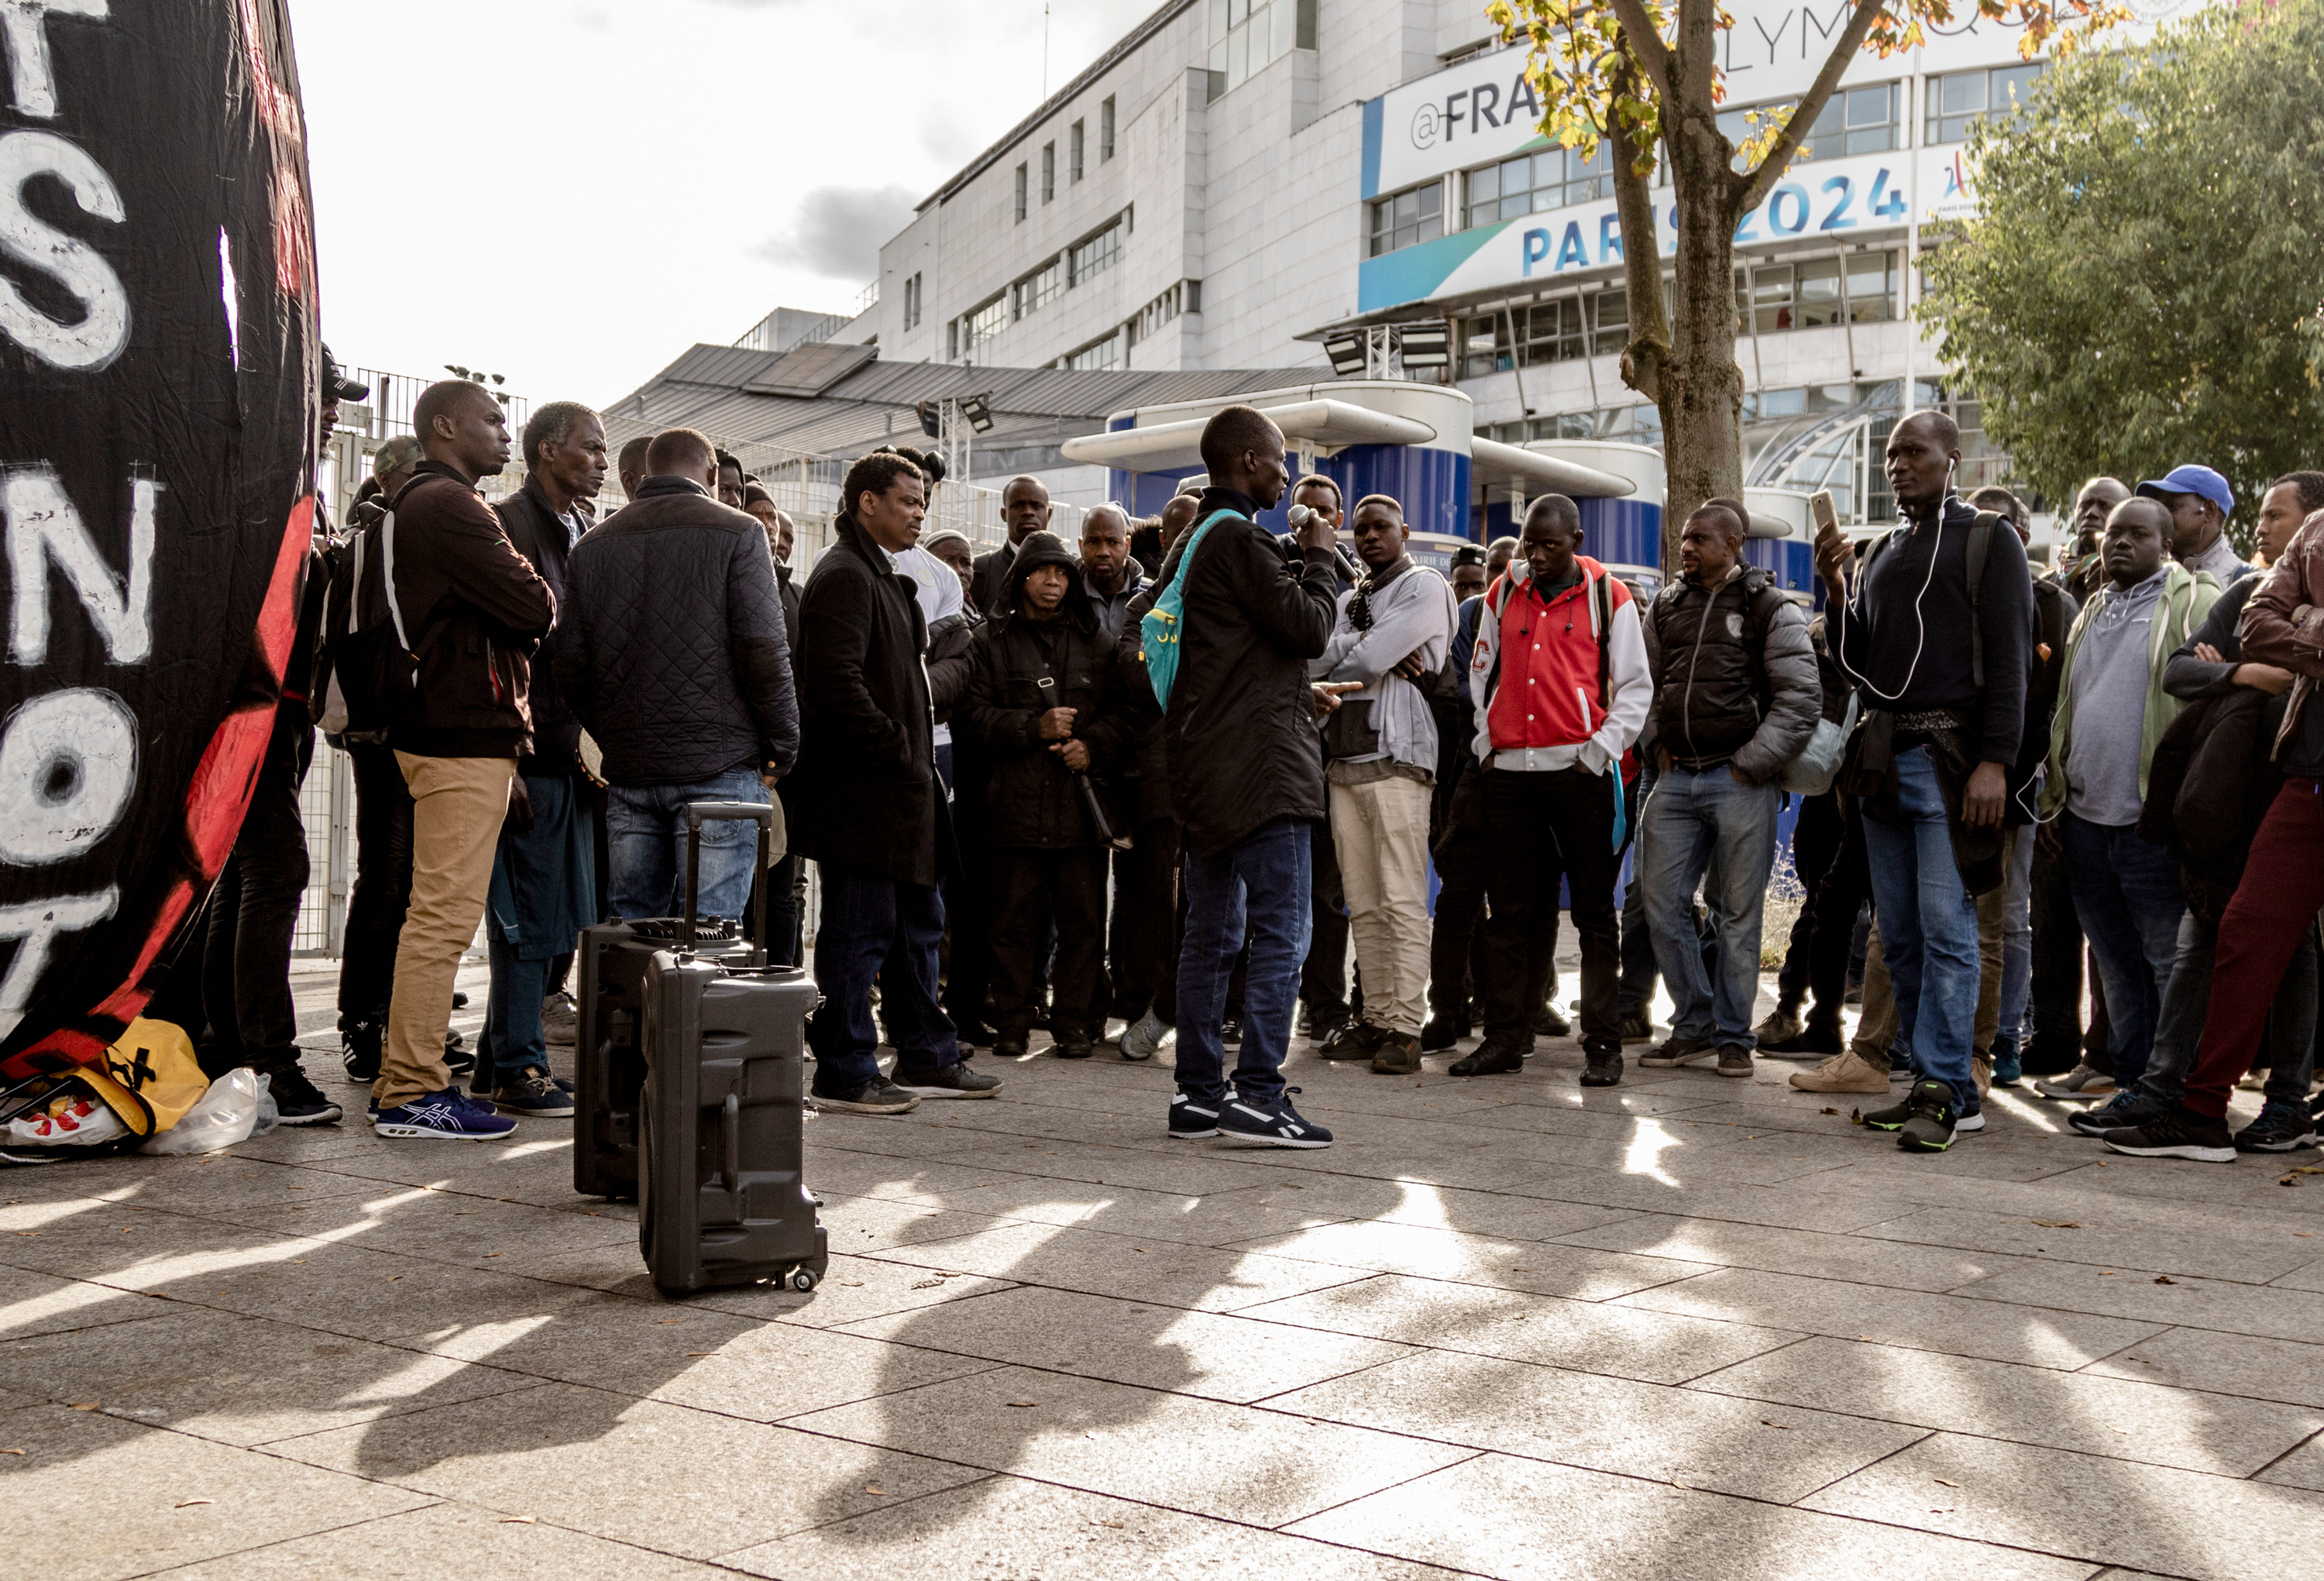 The rally of Gilet Noirs outside Charlety Stadium, Friday, Oct. 11, 2019. (Emma Francis/The Intercept)